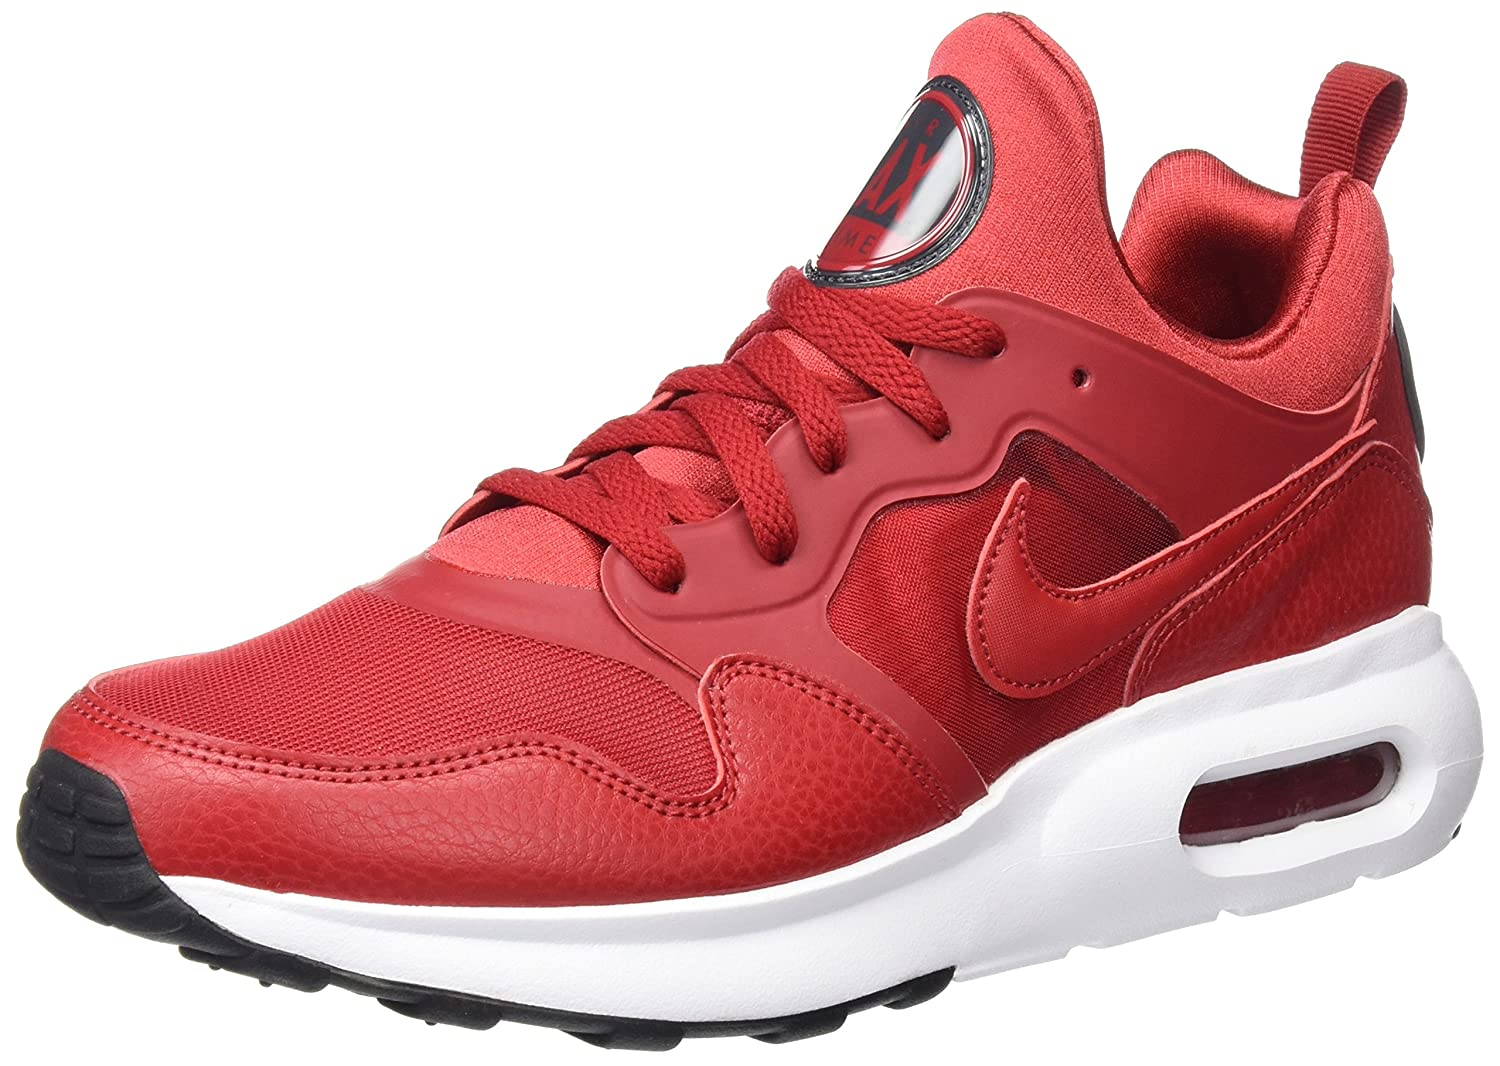 NIKE Men's Air Max Prime Running Shoe B06XSFKD45 9.5 D(M) US|Gym Red/Gym Red Anthracite